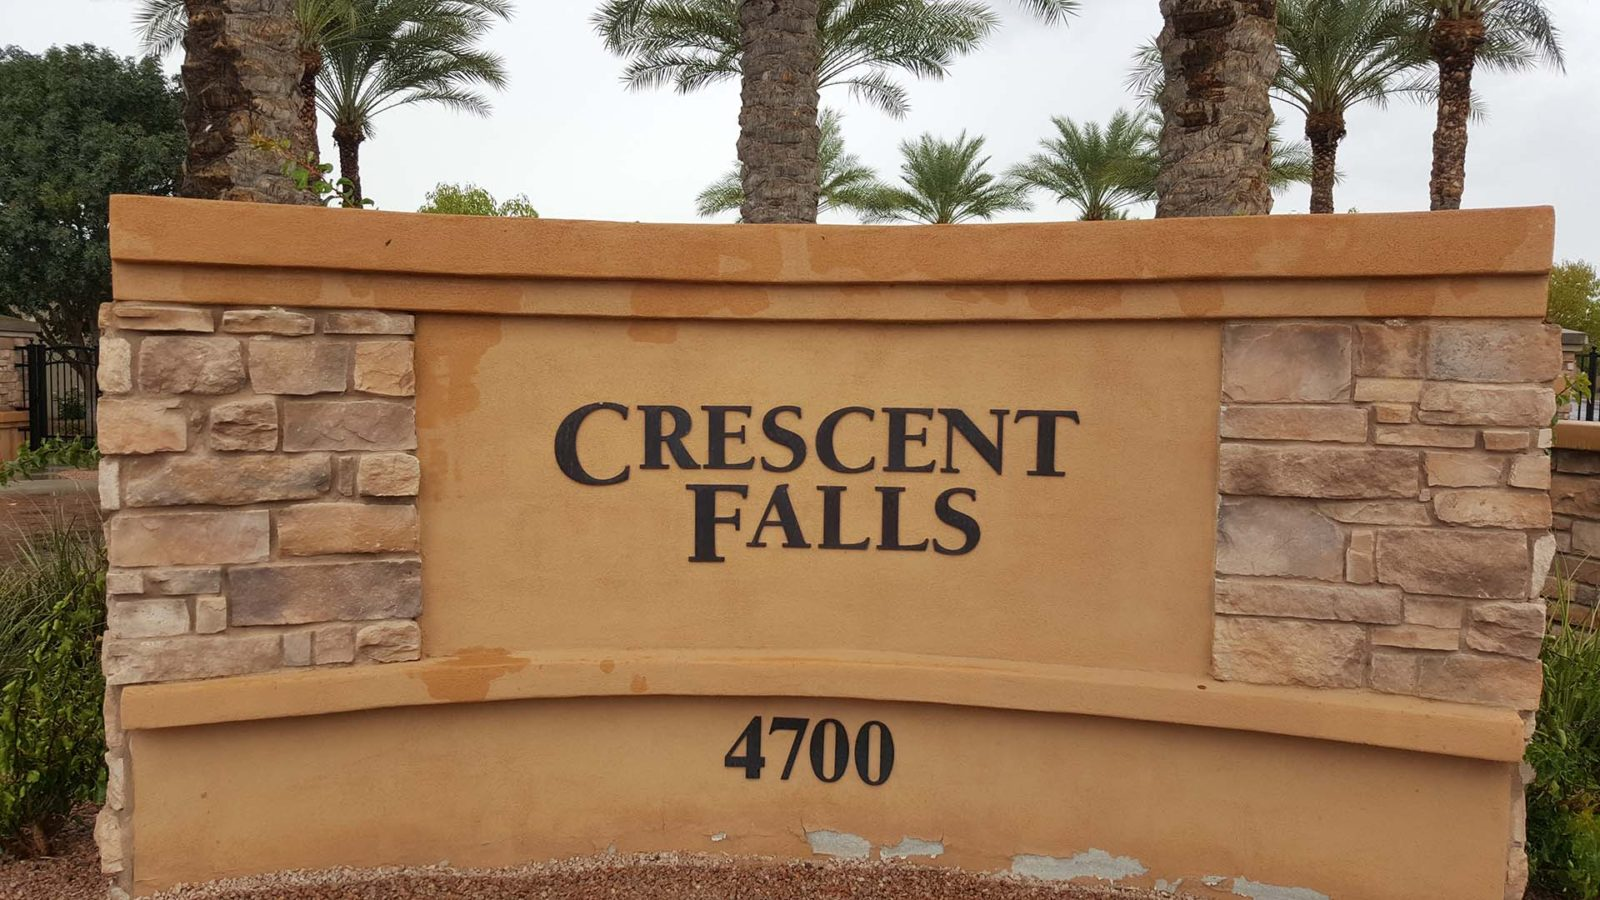 Crescent Falls in Fulton Ranch